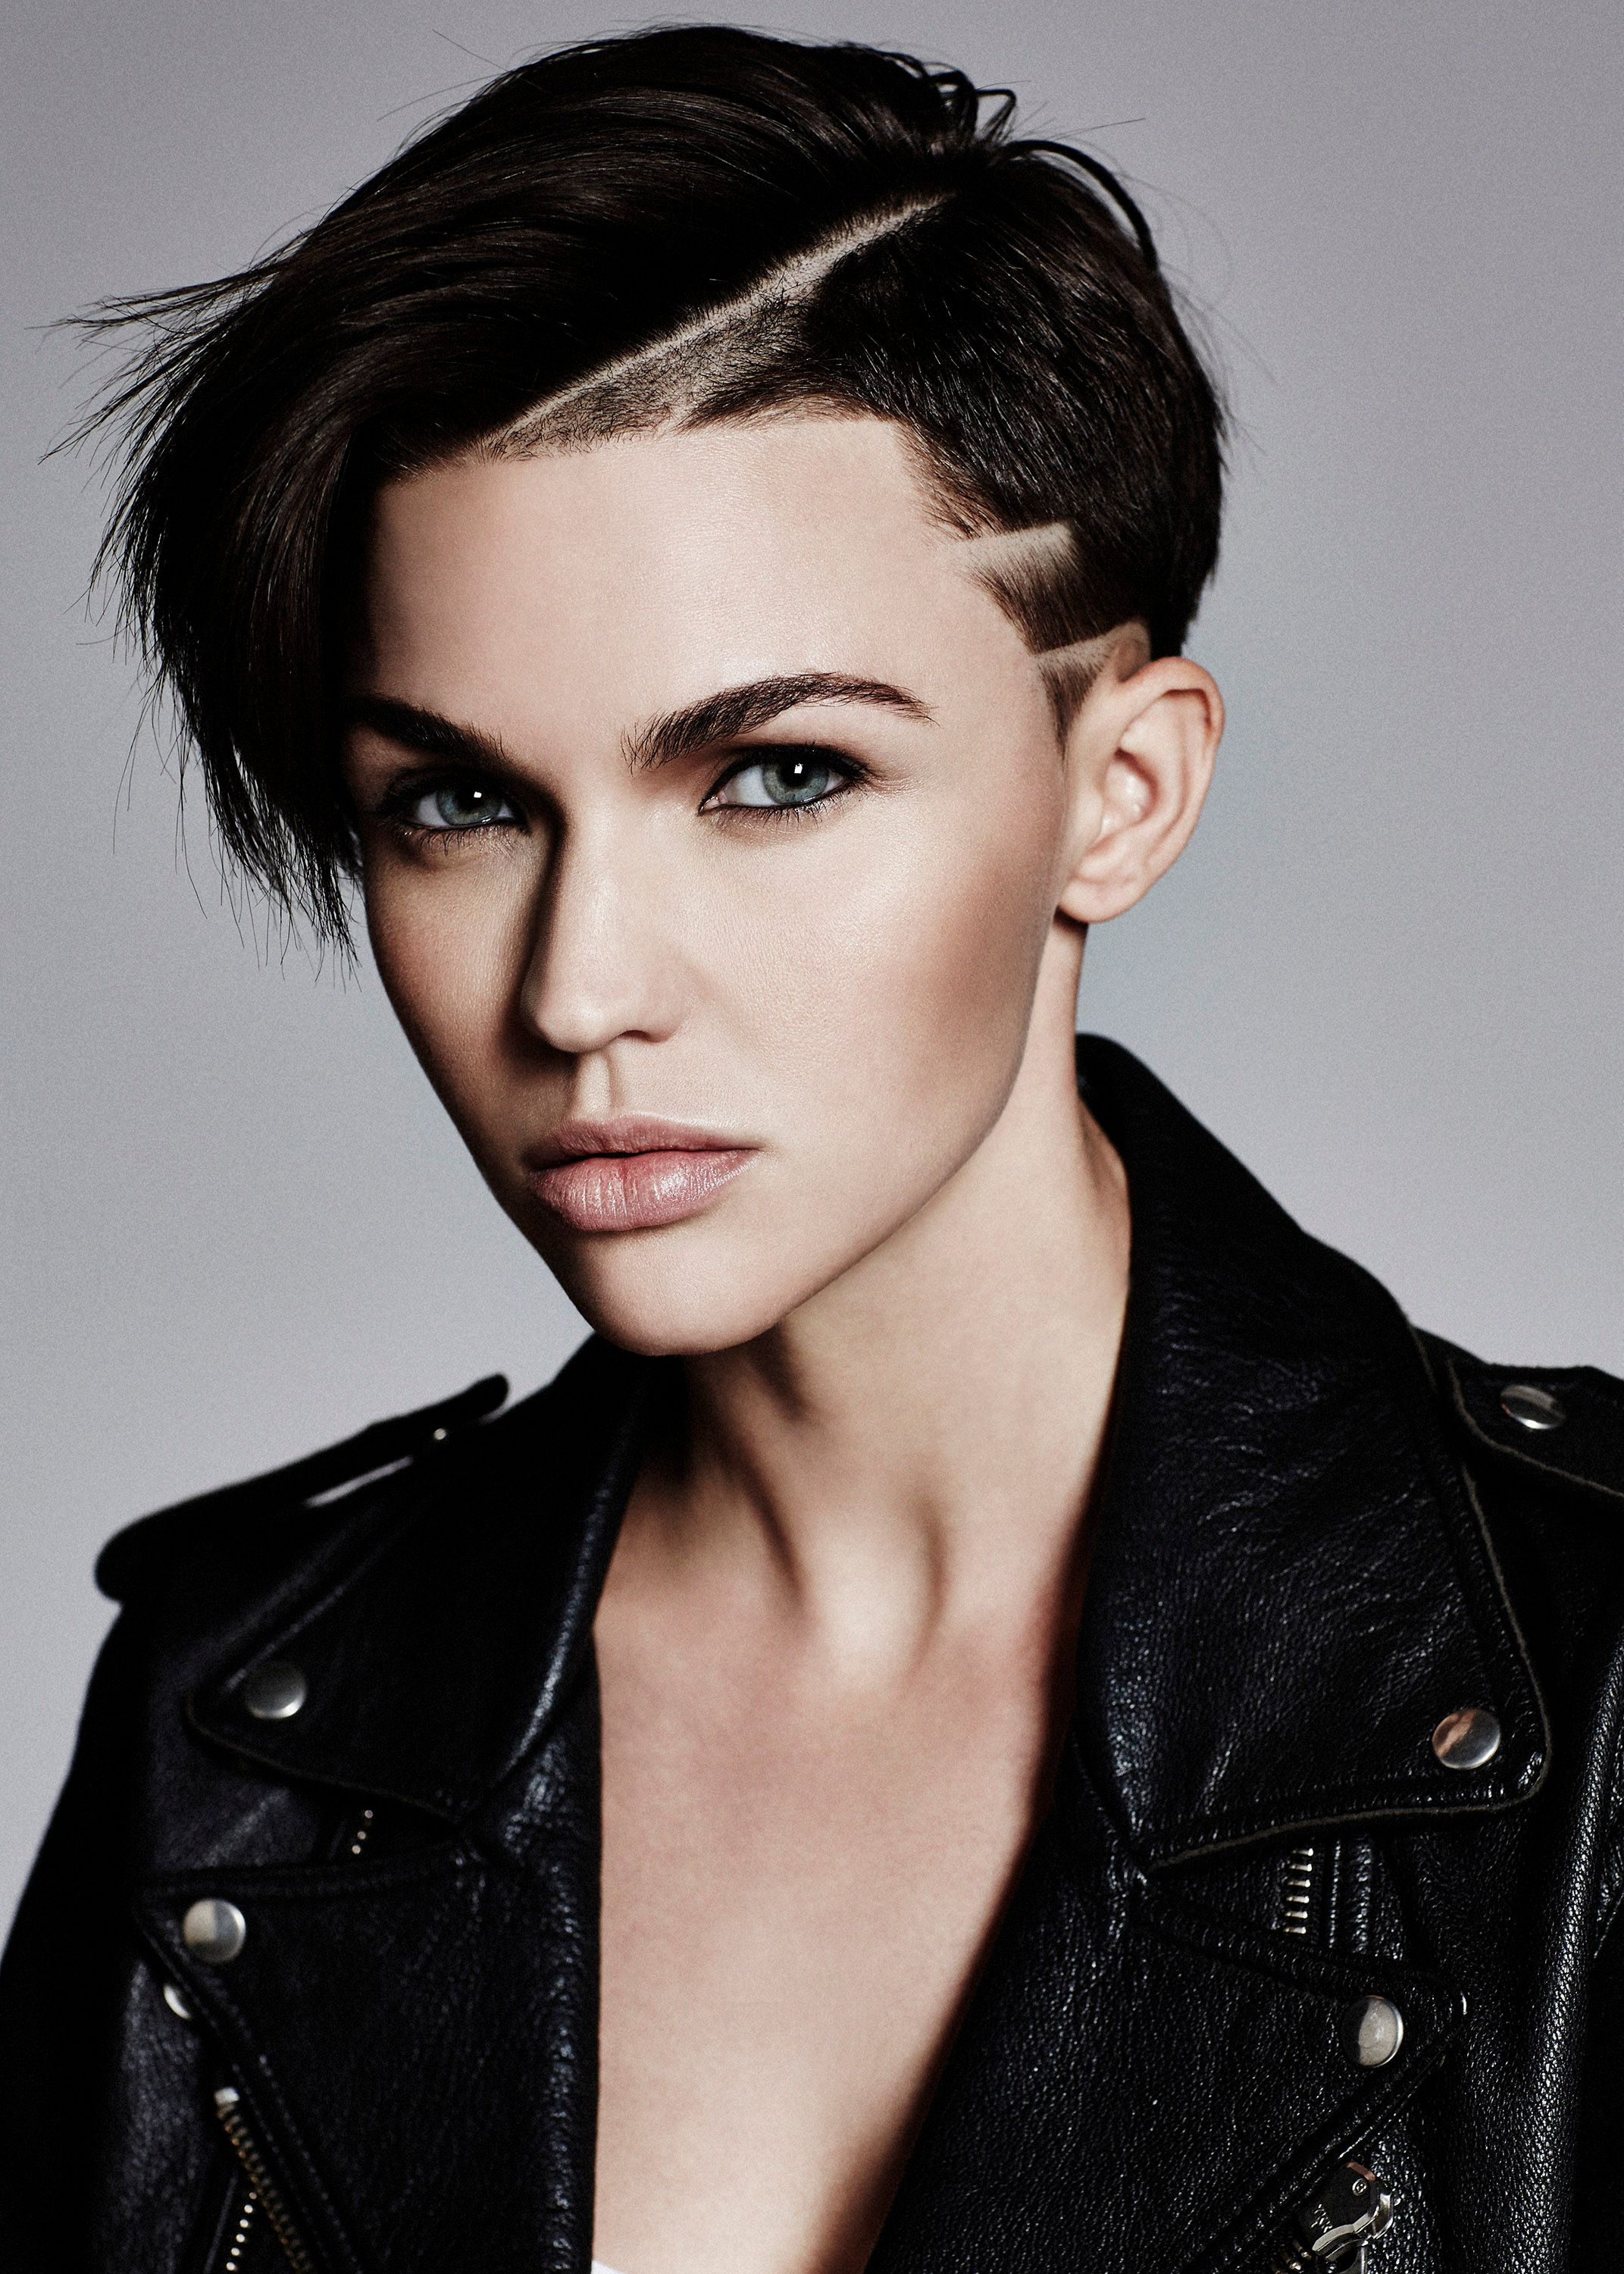 aac66774b Ruby Rose Is Batwoman in The CW's New Superhero Series | Collider